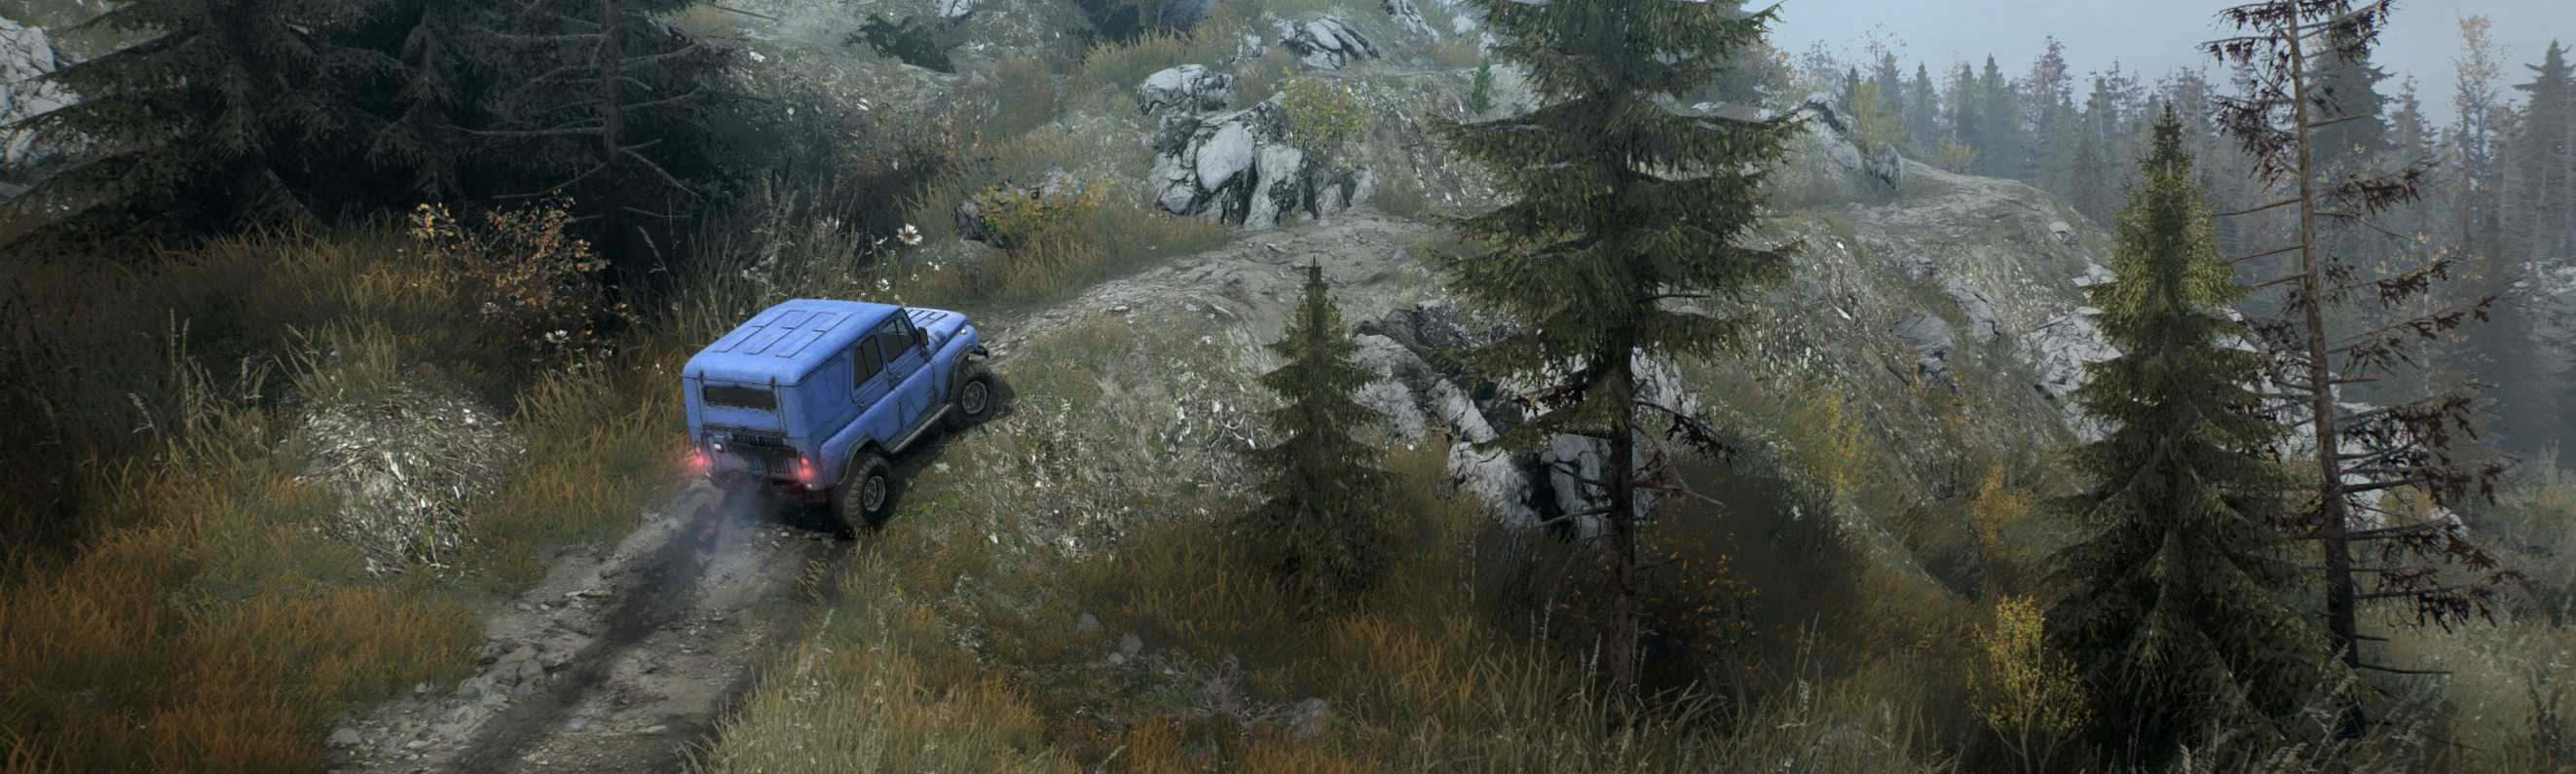 Spintires: MudRunner on Consoles | MudRunner Mods on Consoles